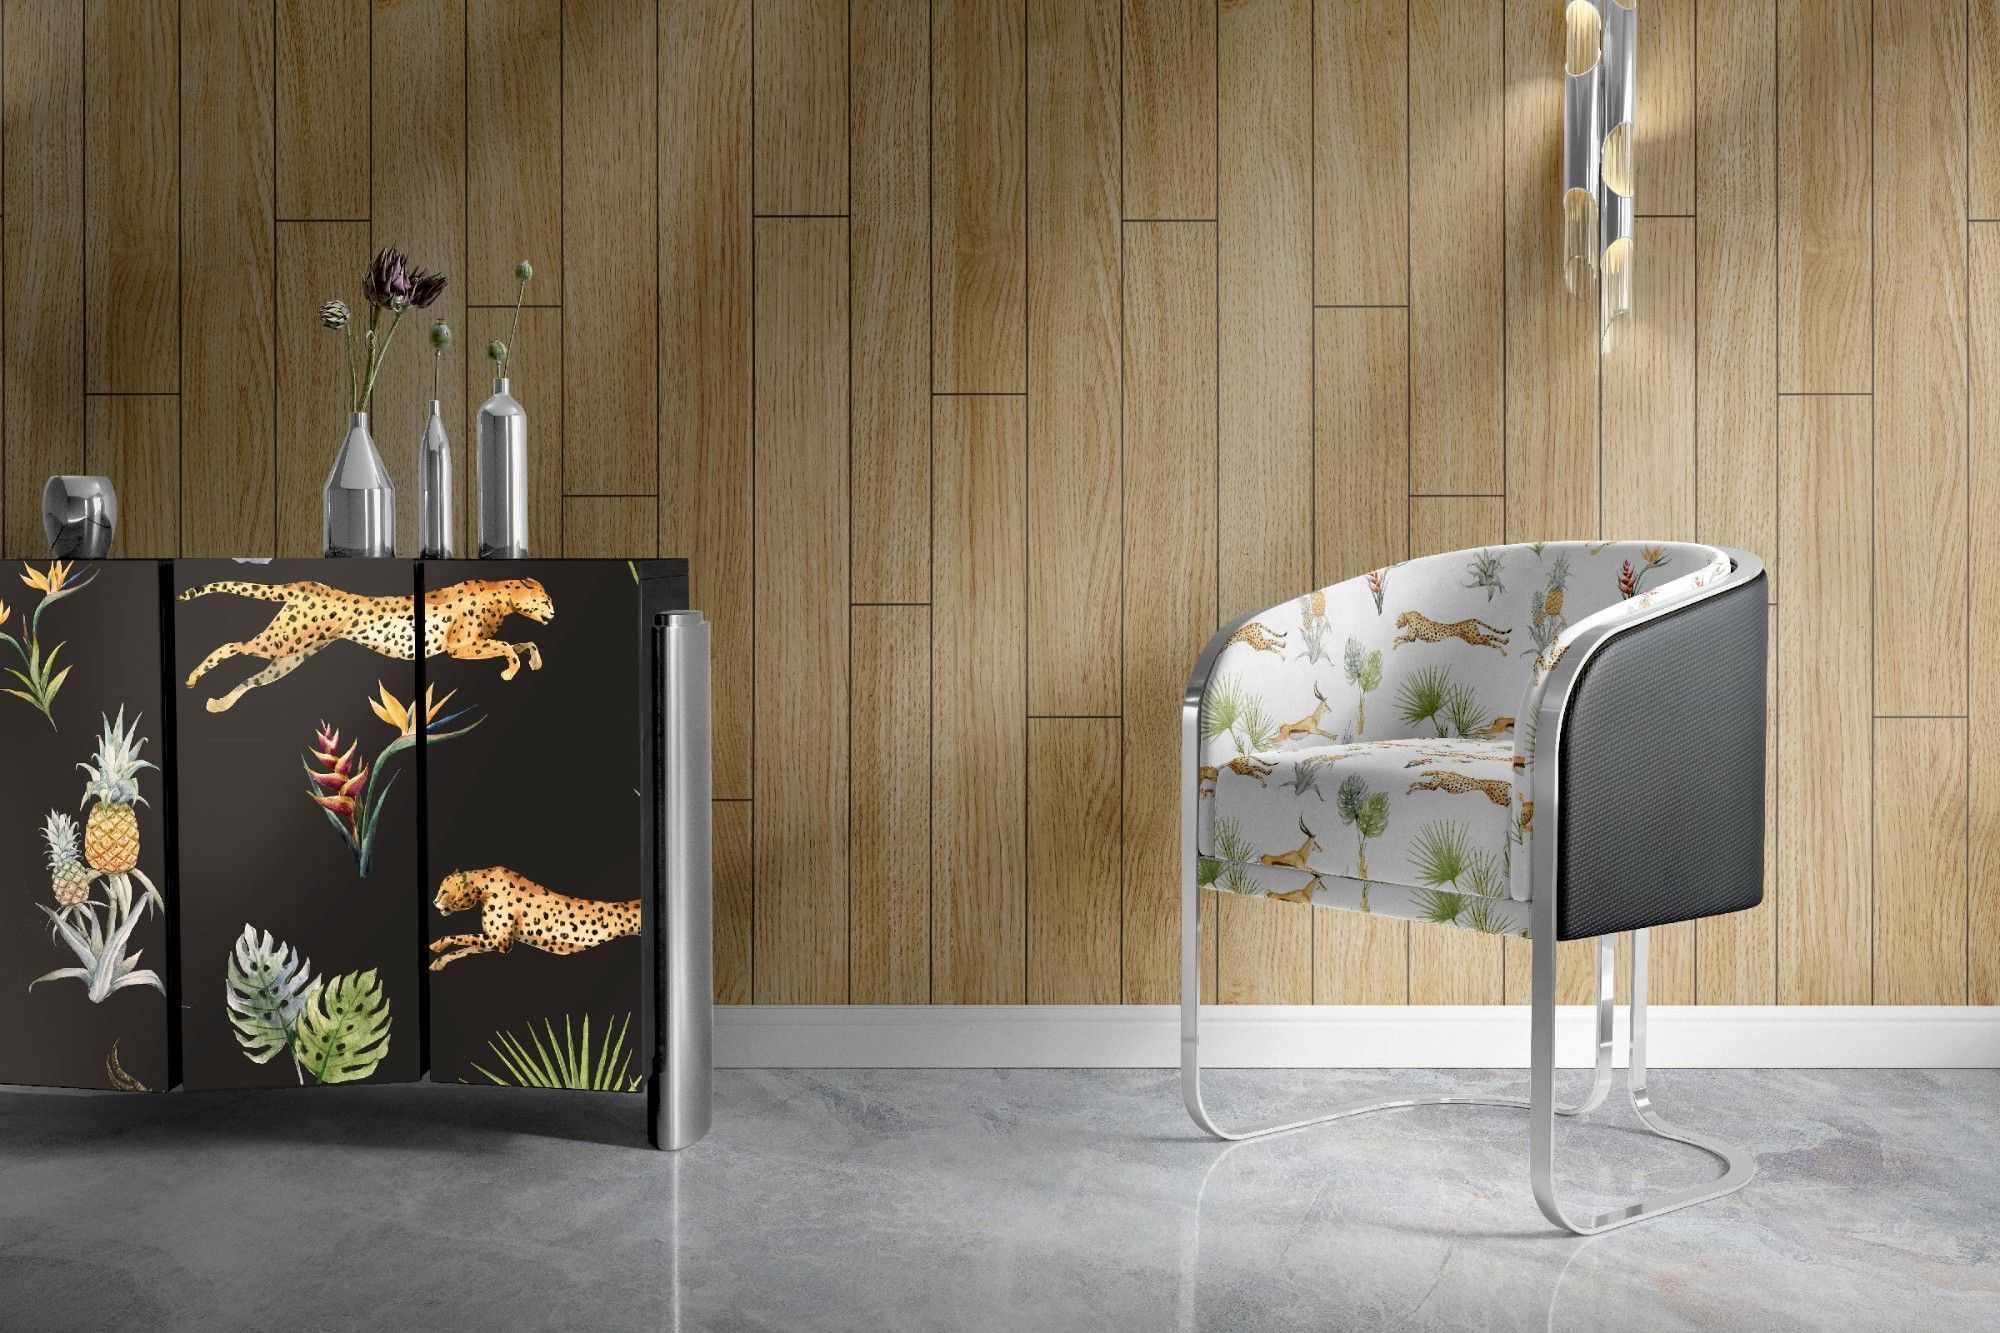 jungle fever concept hard finishes upholstery and wallpaper